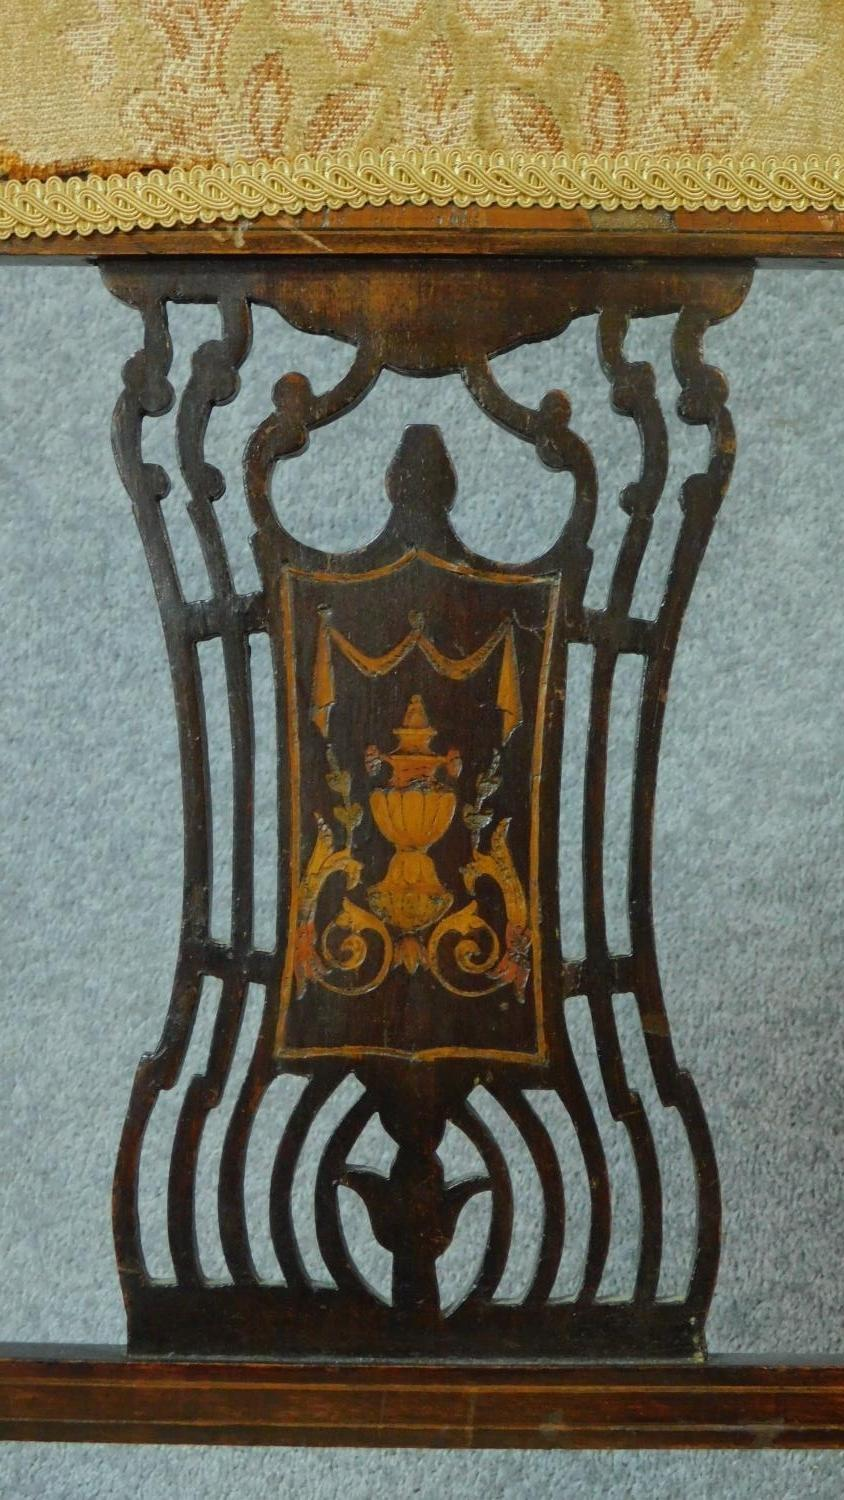 A late Victorian mahogany and satinwood inlaid armchair with urn design to the back, floral - Image 3 of 7